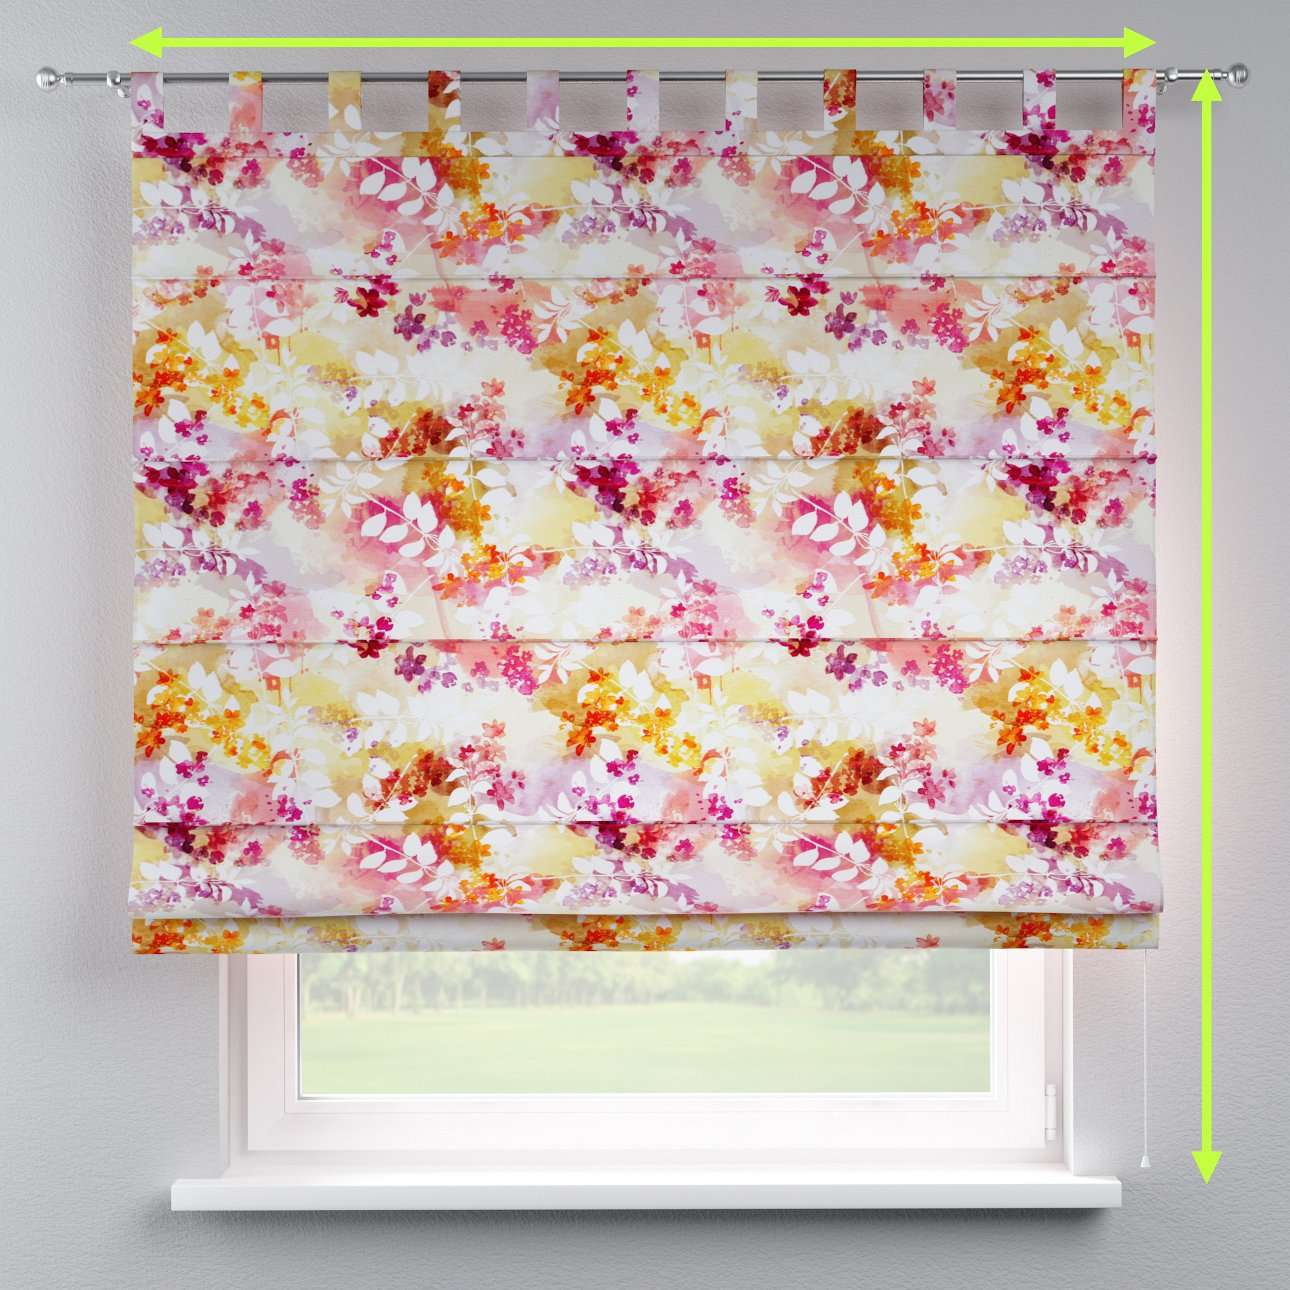 Verona tab top roman blind in collection Monet, fabric: 140-05